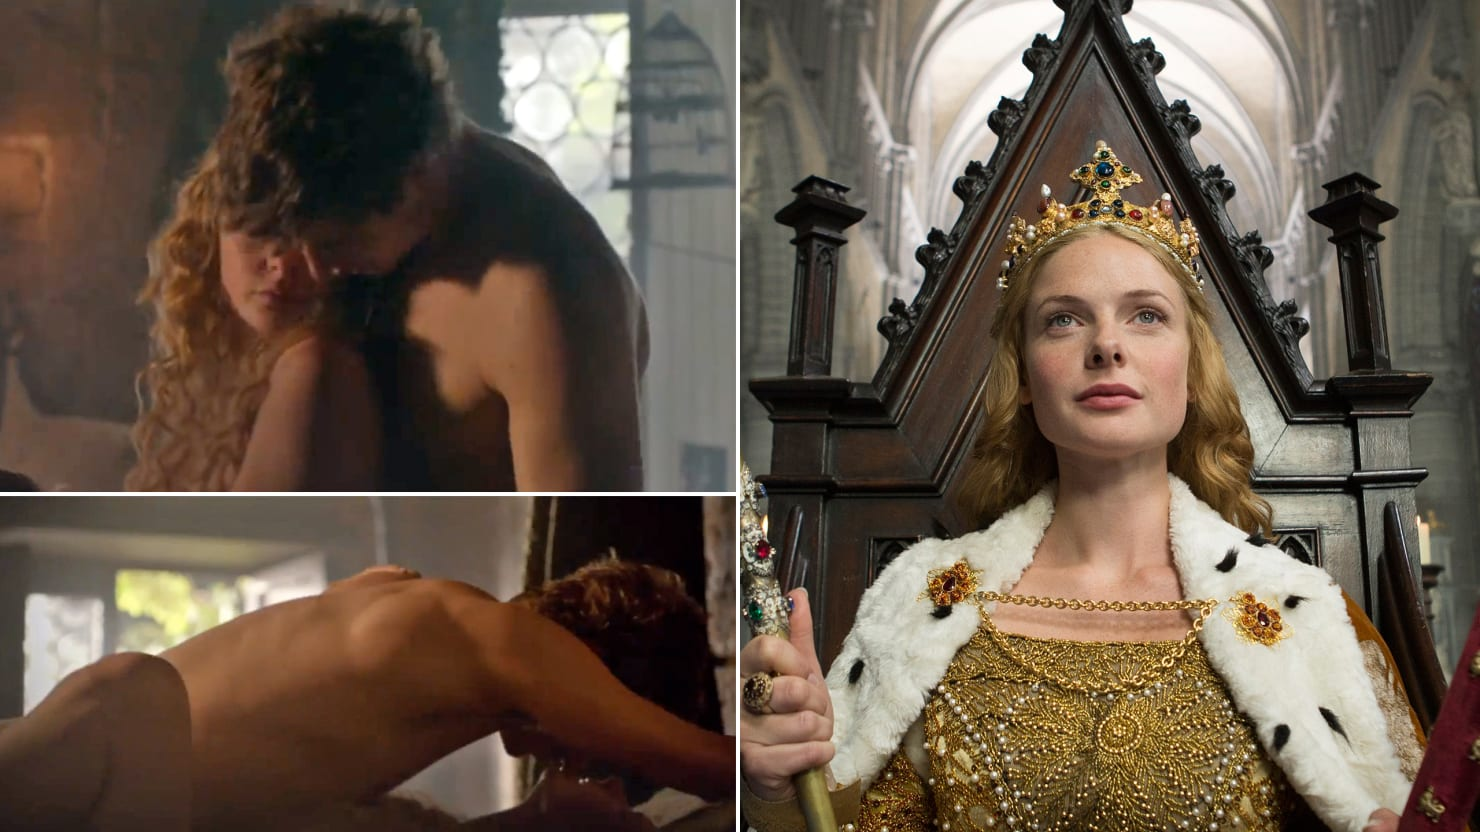 American Wedding Nude Scenes will sex help sell 'the white queen'?